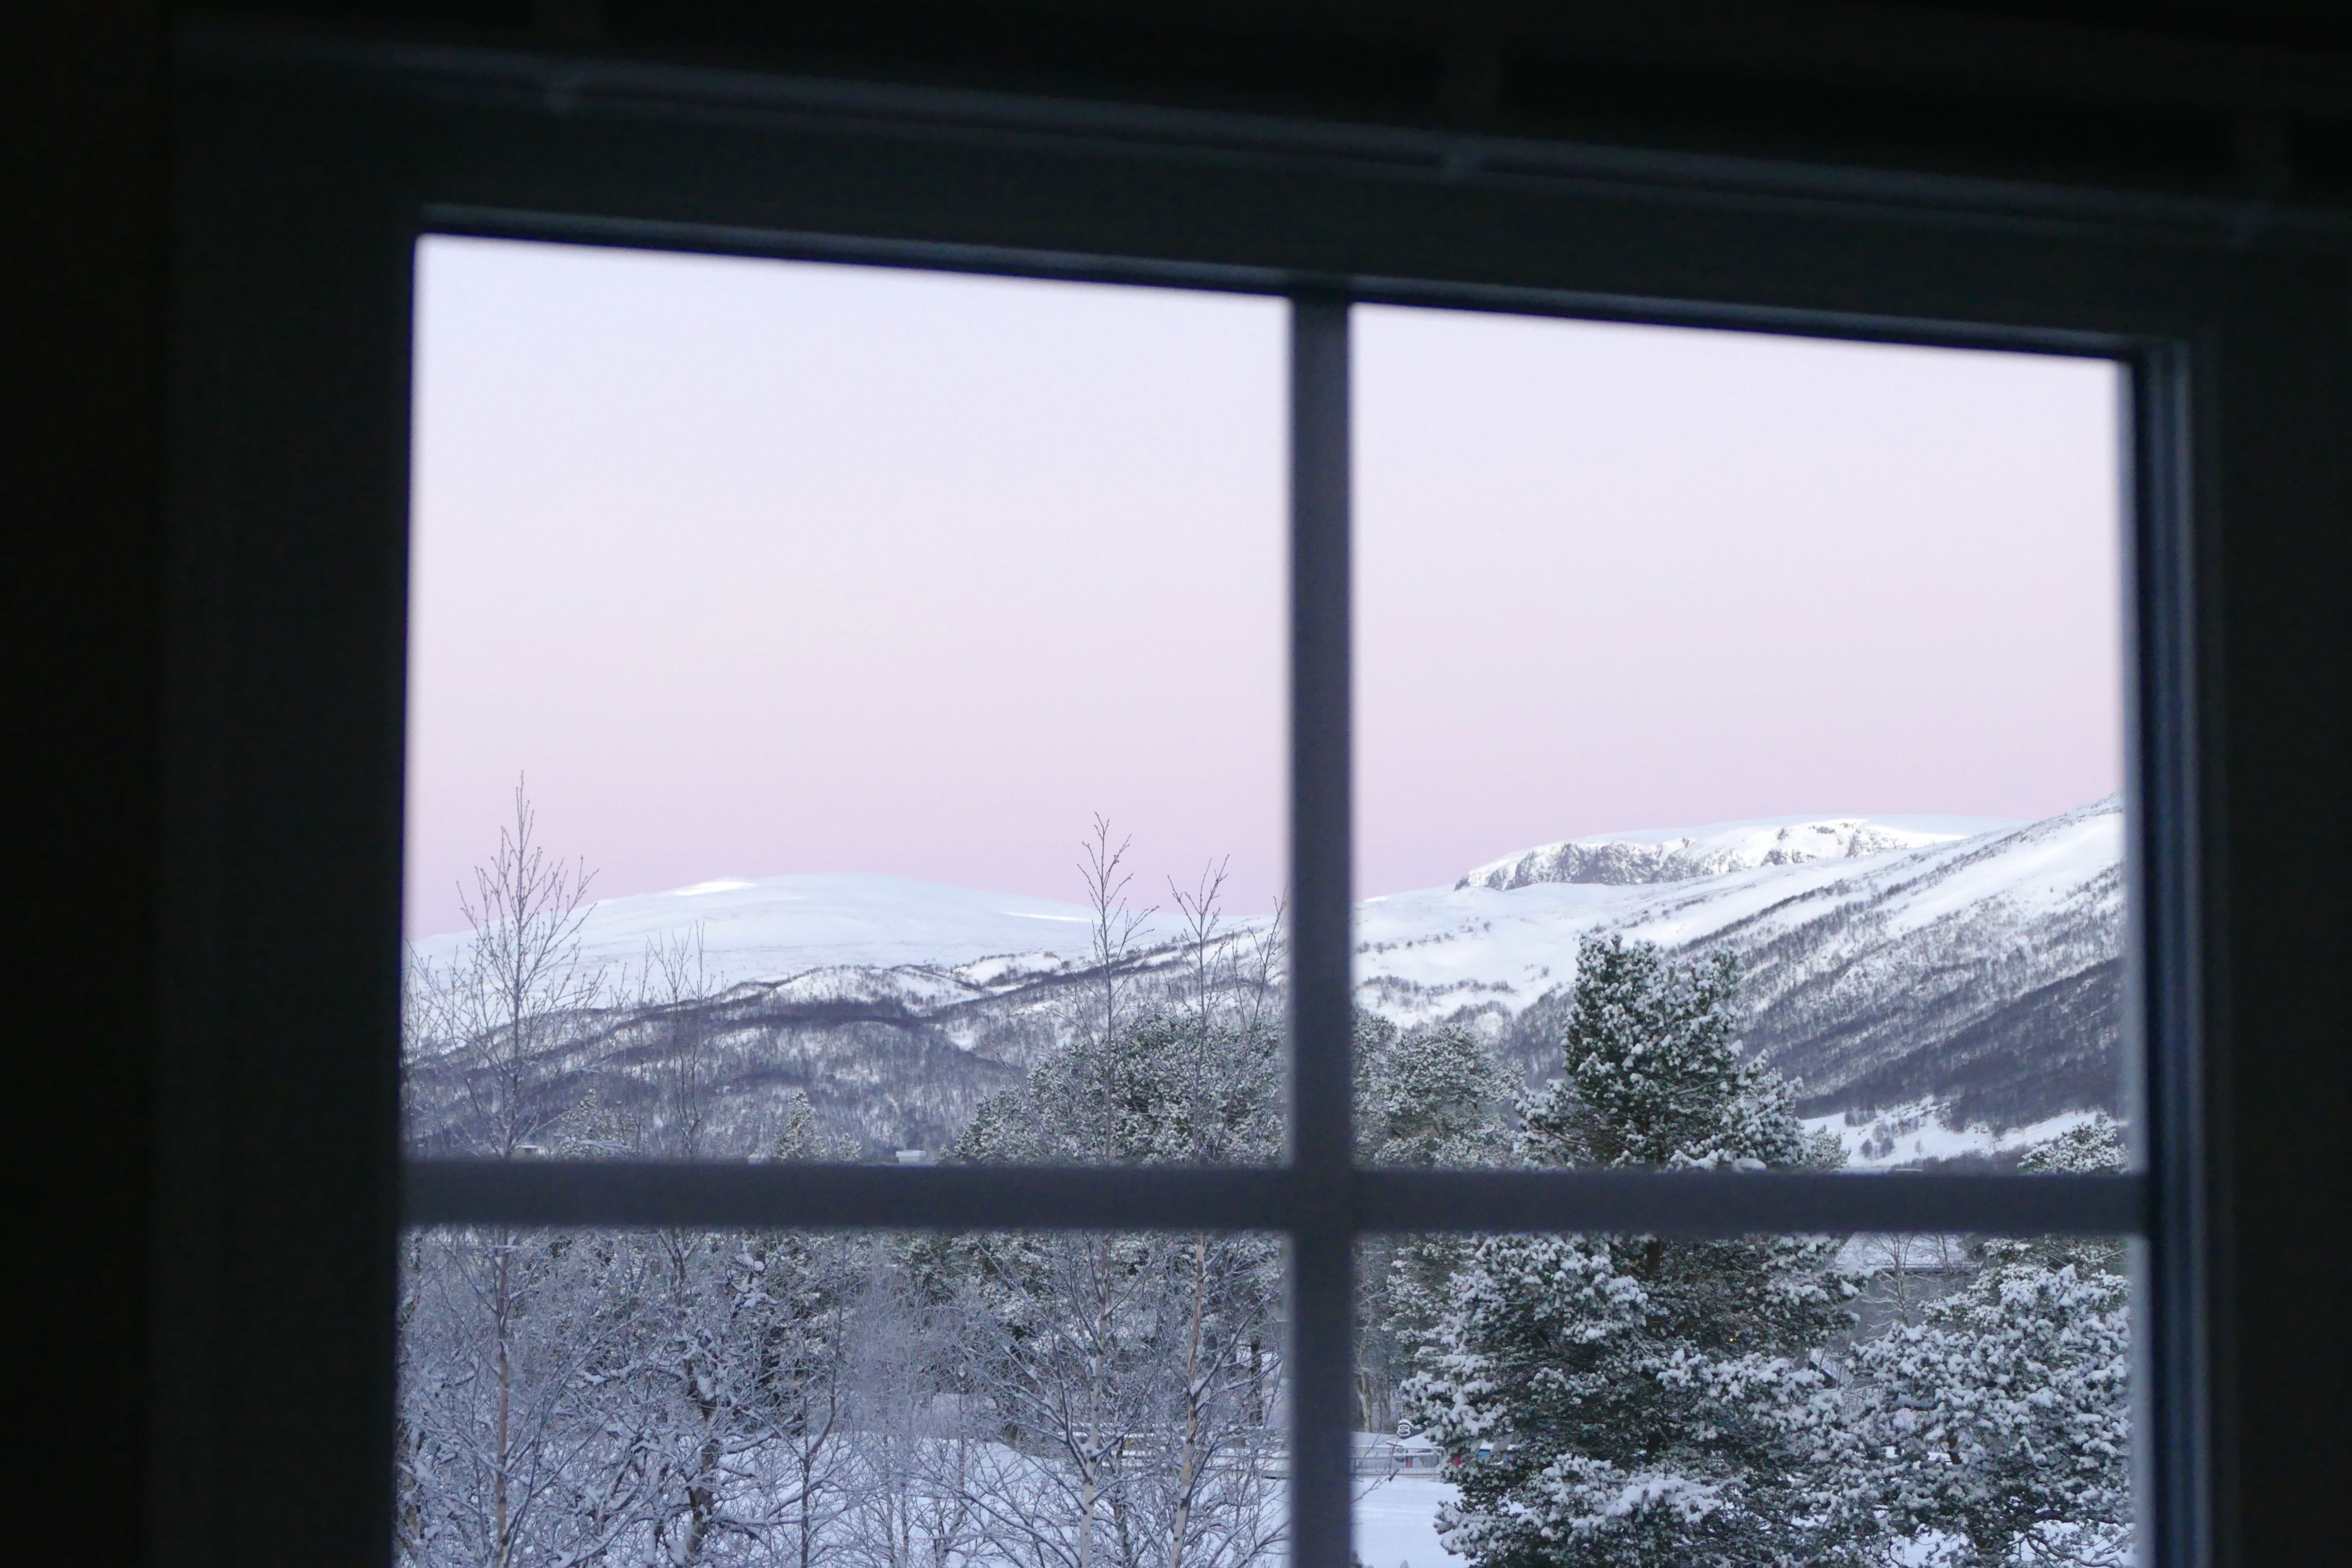 Utsikt fra hytte / View from the cabins